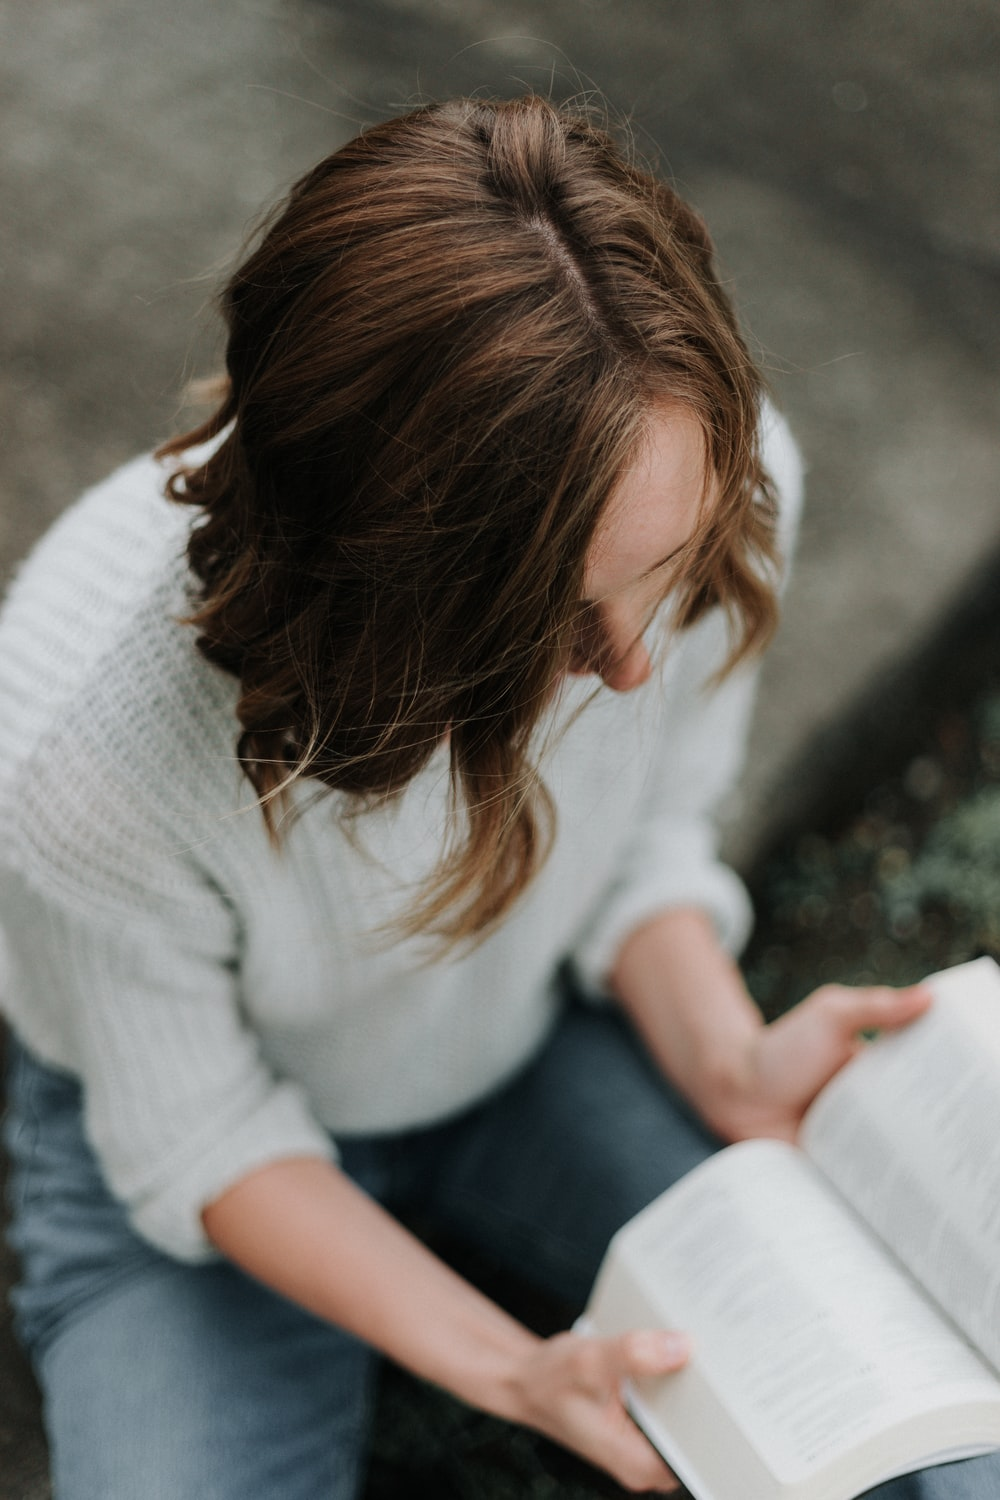 woman sitting on floor while reading book